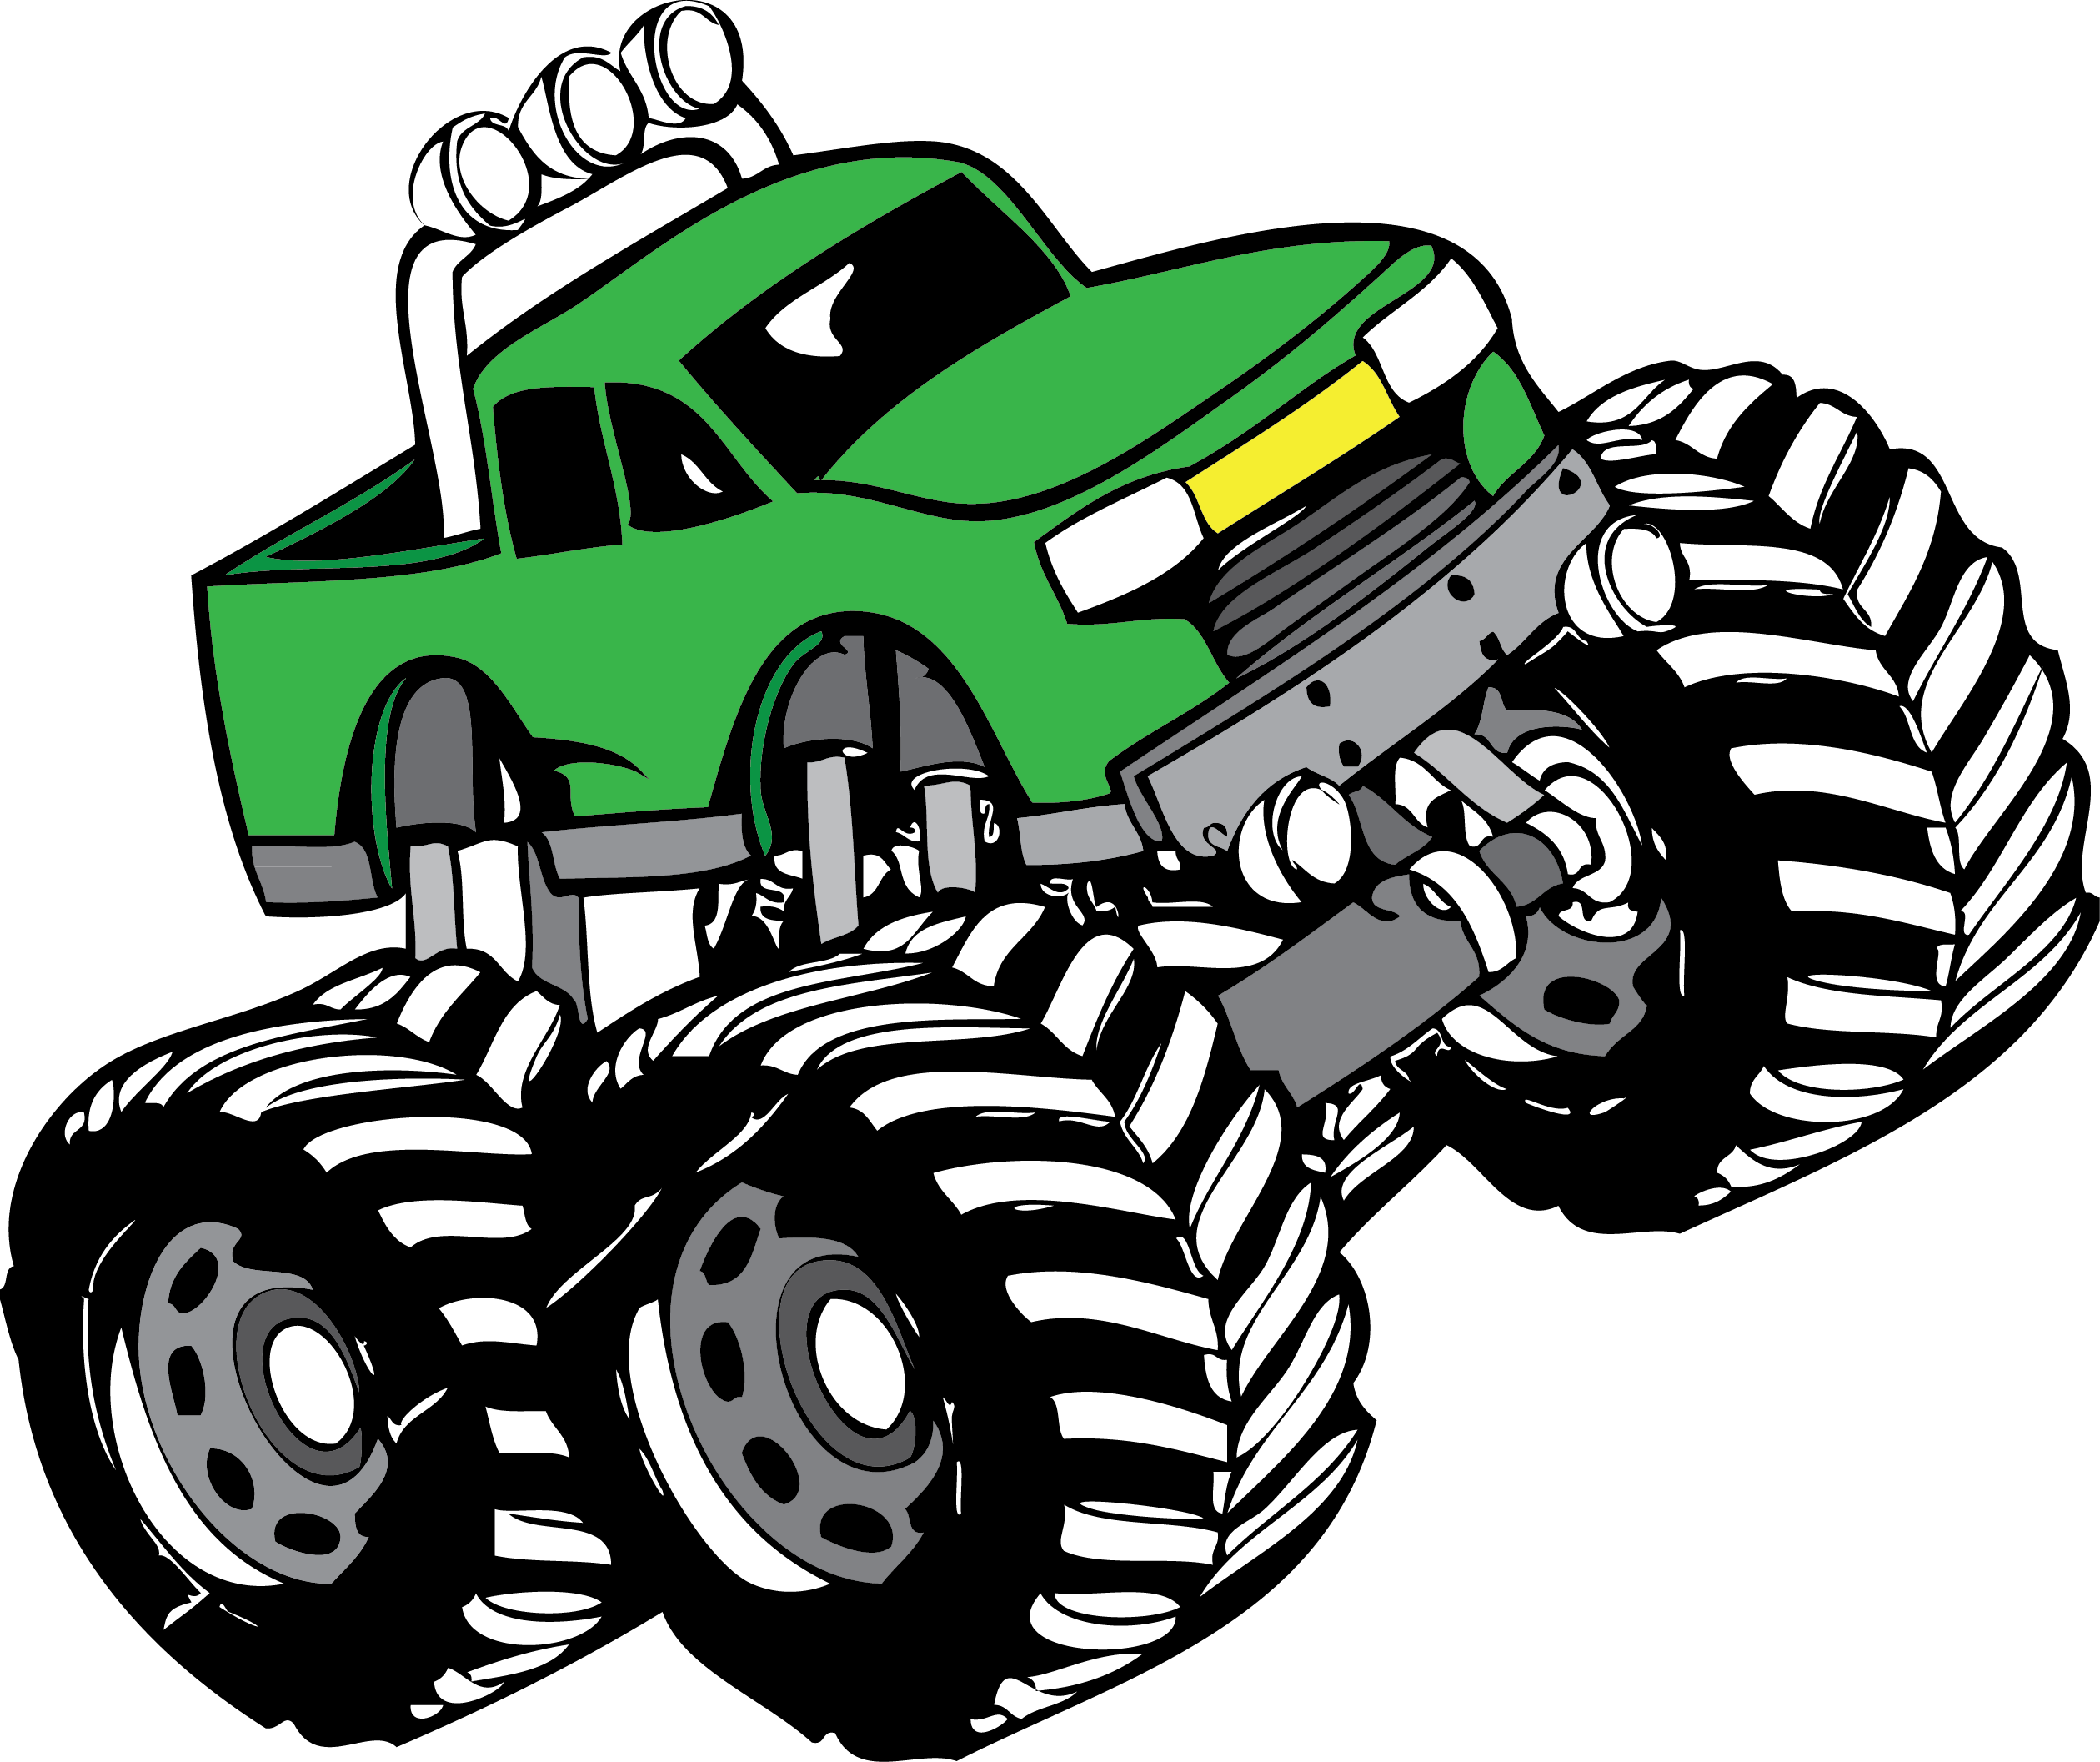 monster truck clip art 24343 monster trucks pinterest monster rh pinterest com monster truck clip art free monster truck clipart png